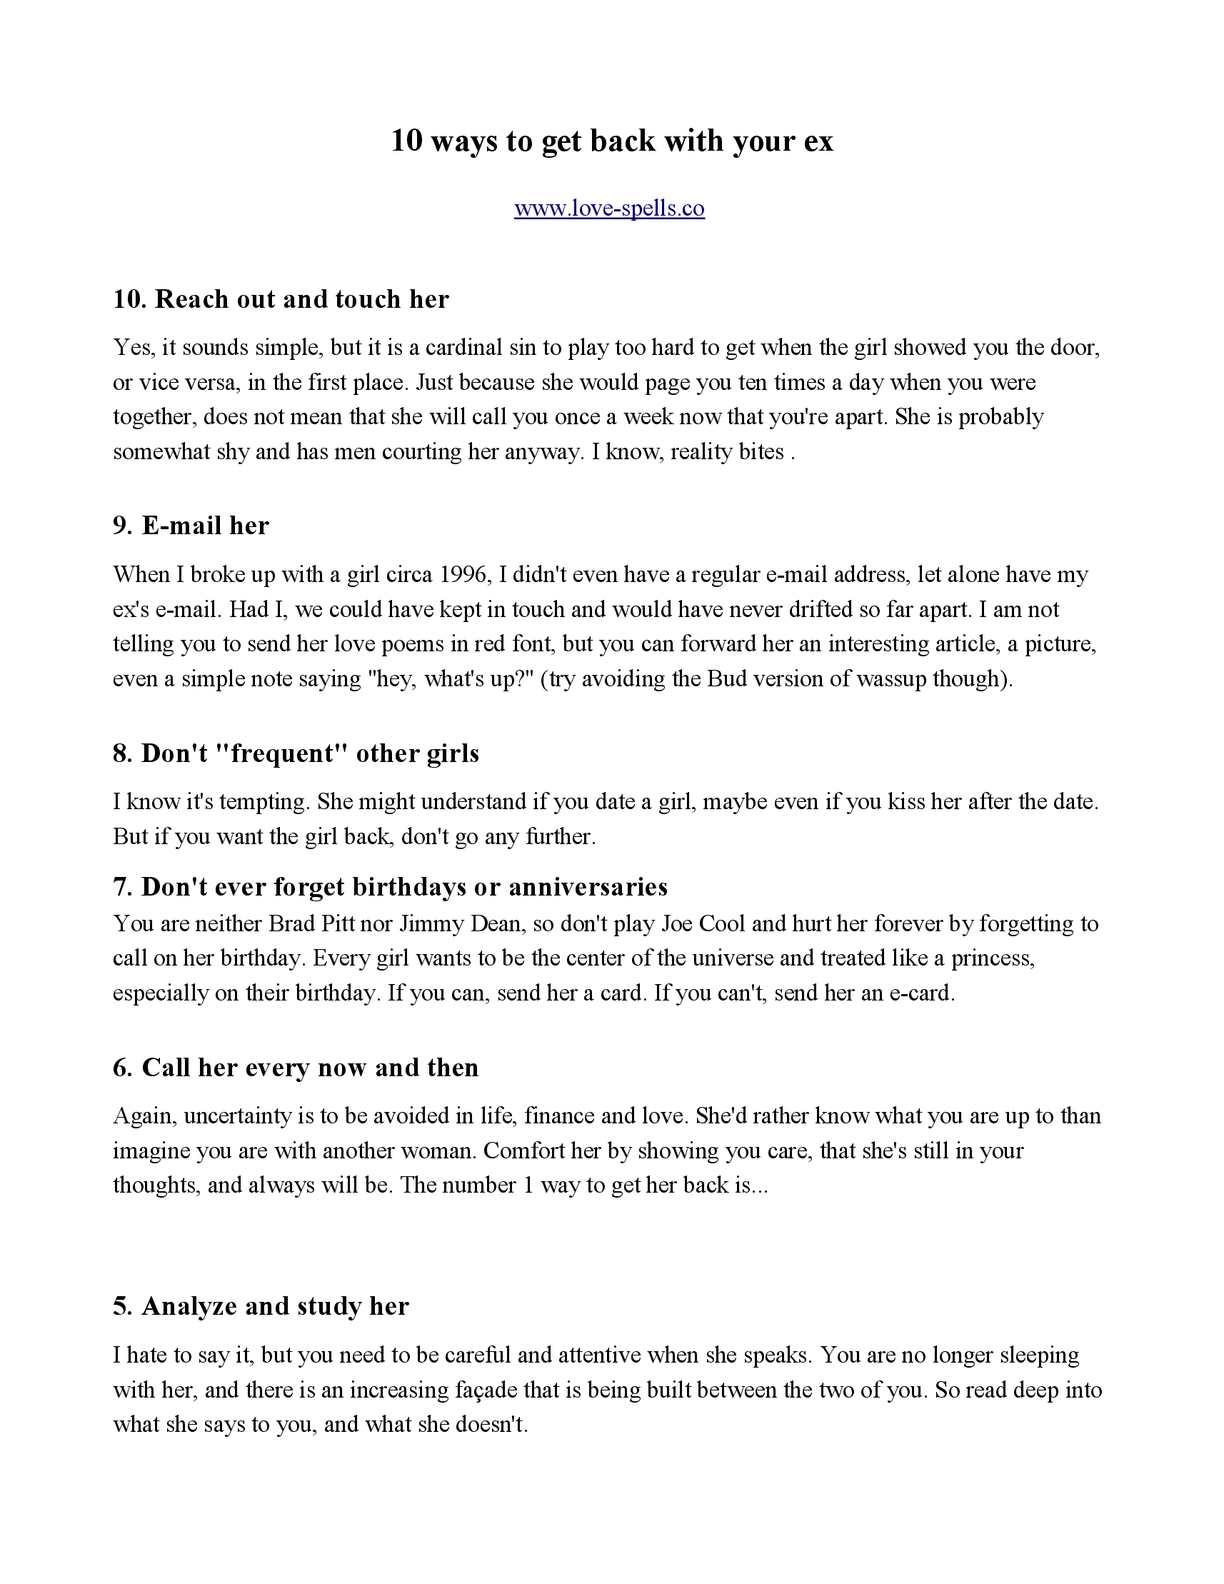 10 ways to get your girlfriend back